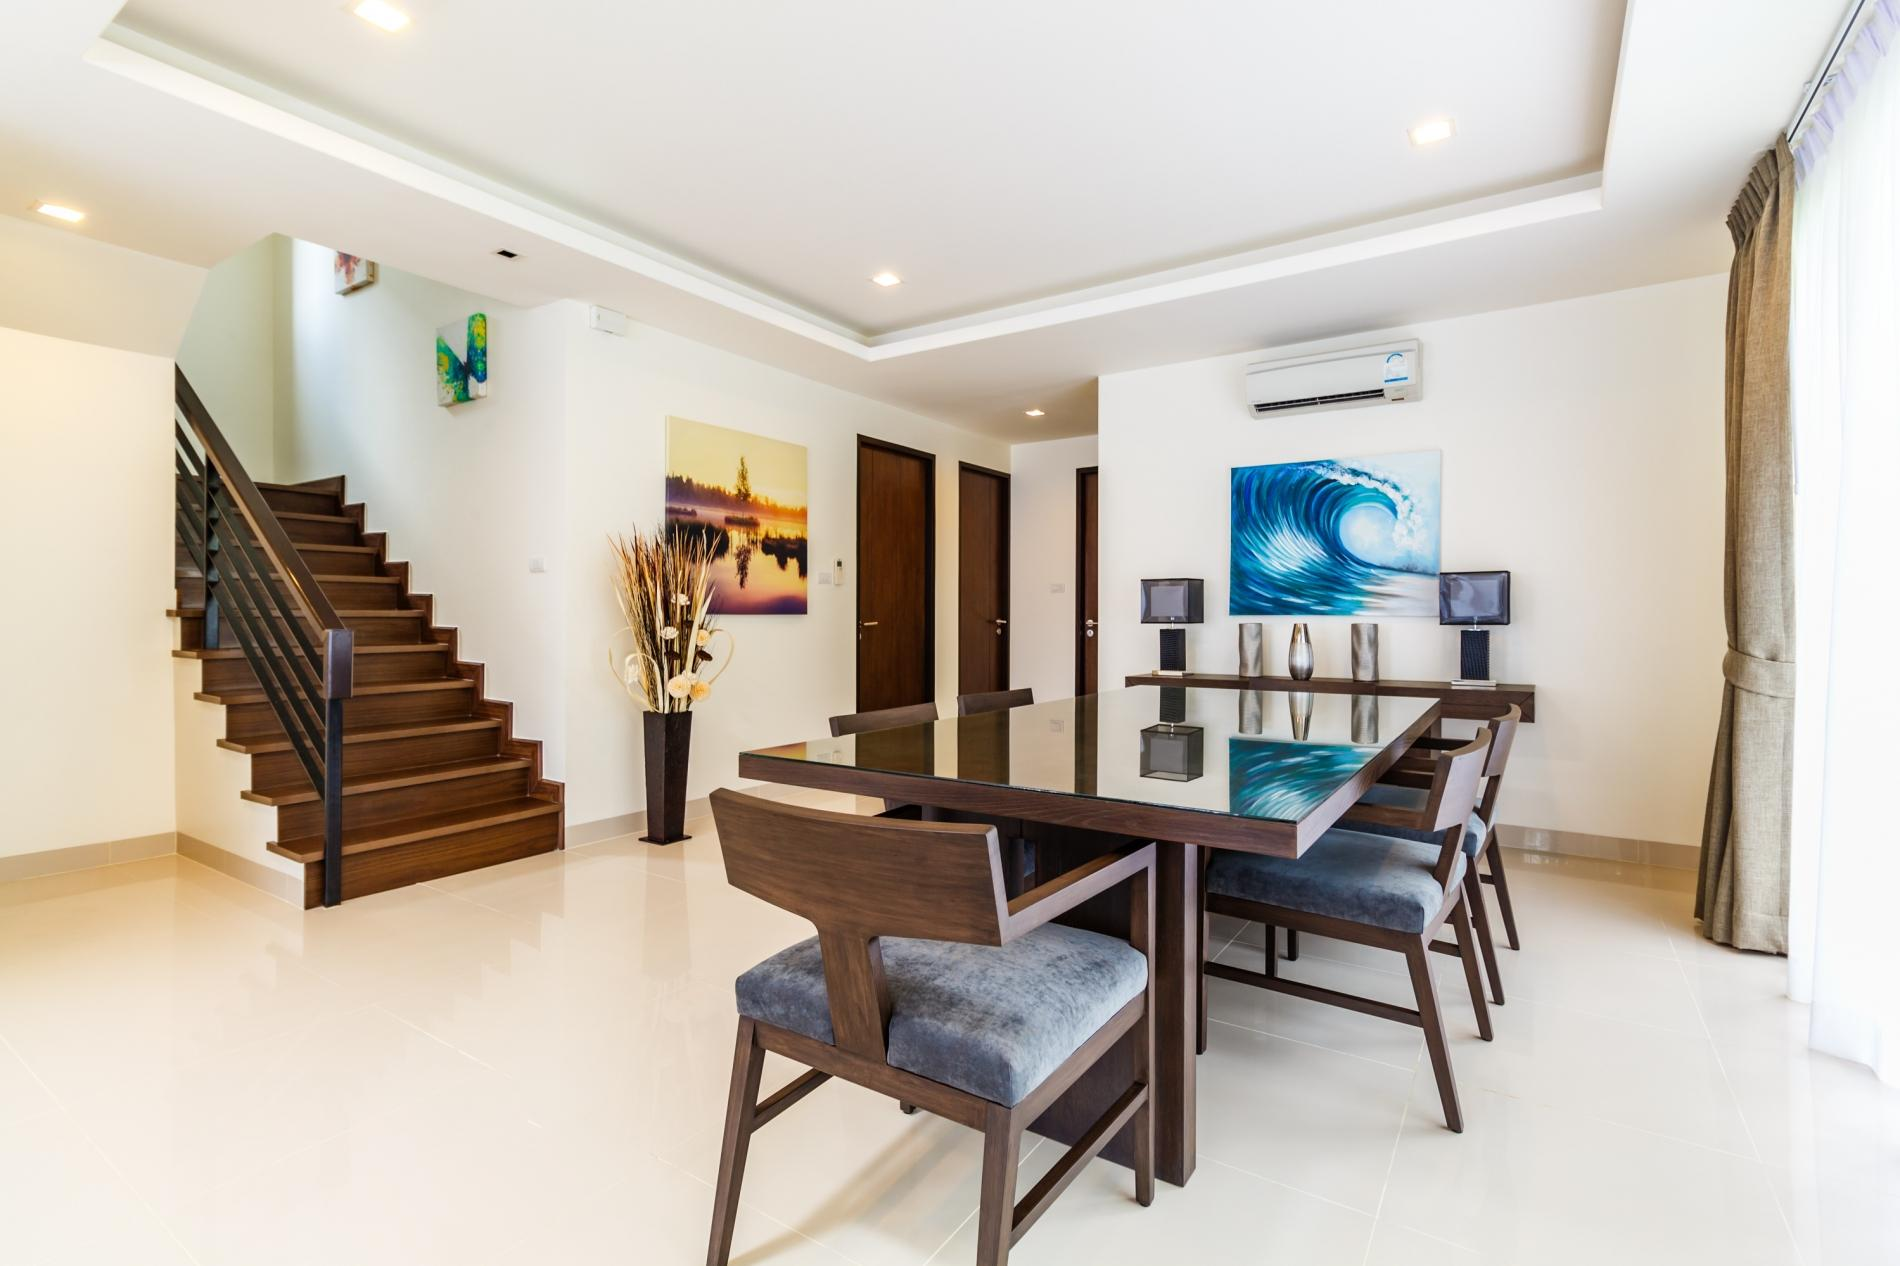 LP101 - Private rooftop pool villa in Laguna for 9 people, near restaurants and shops photo 16936719